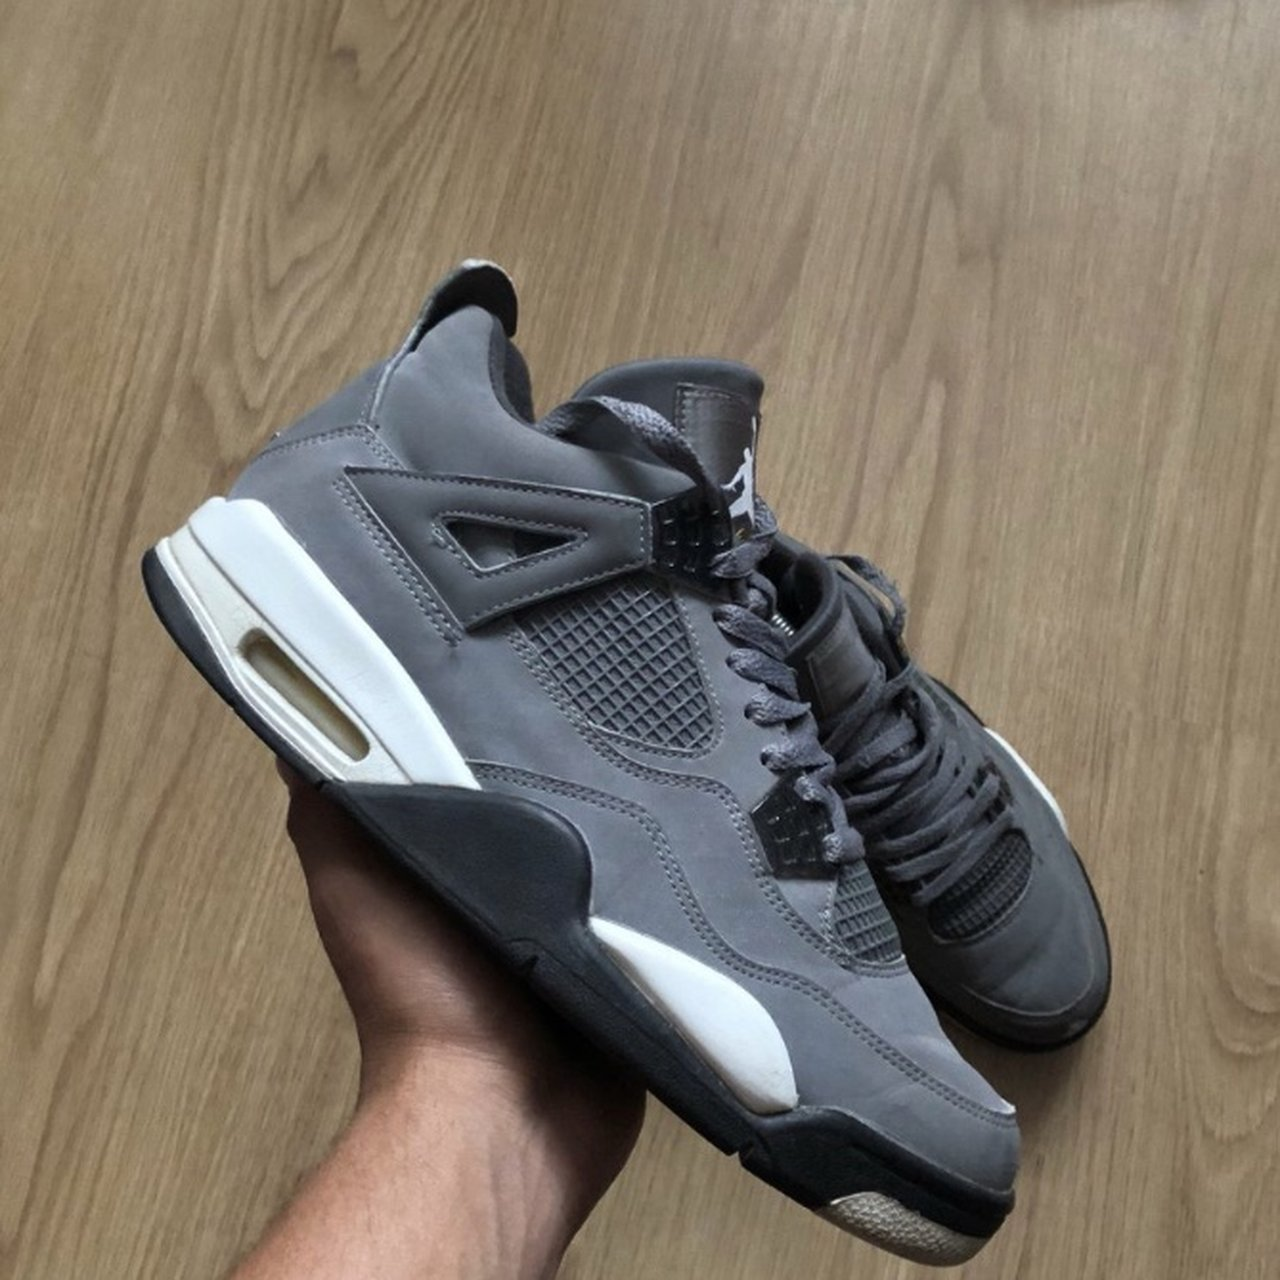 a6c4f93240cd54 Nike Jordan 4 cool grey